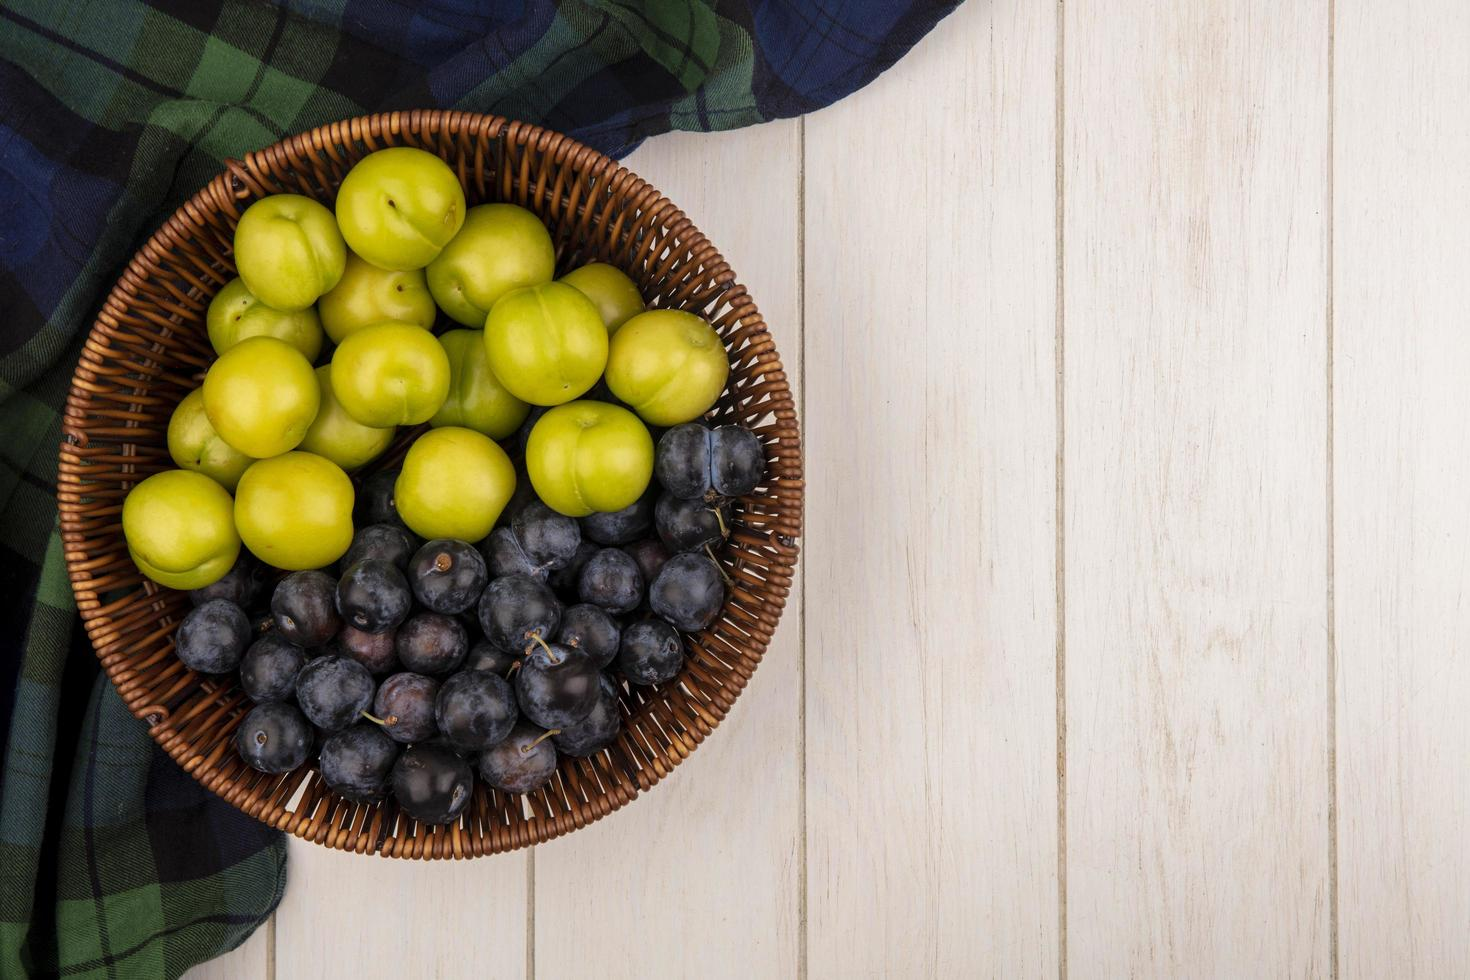 Top view of green cherry plums and sloes photo